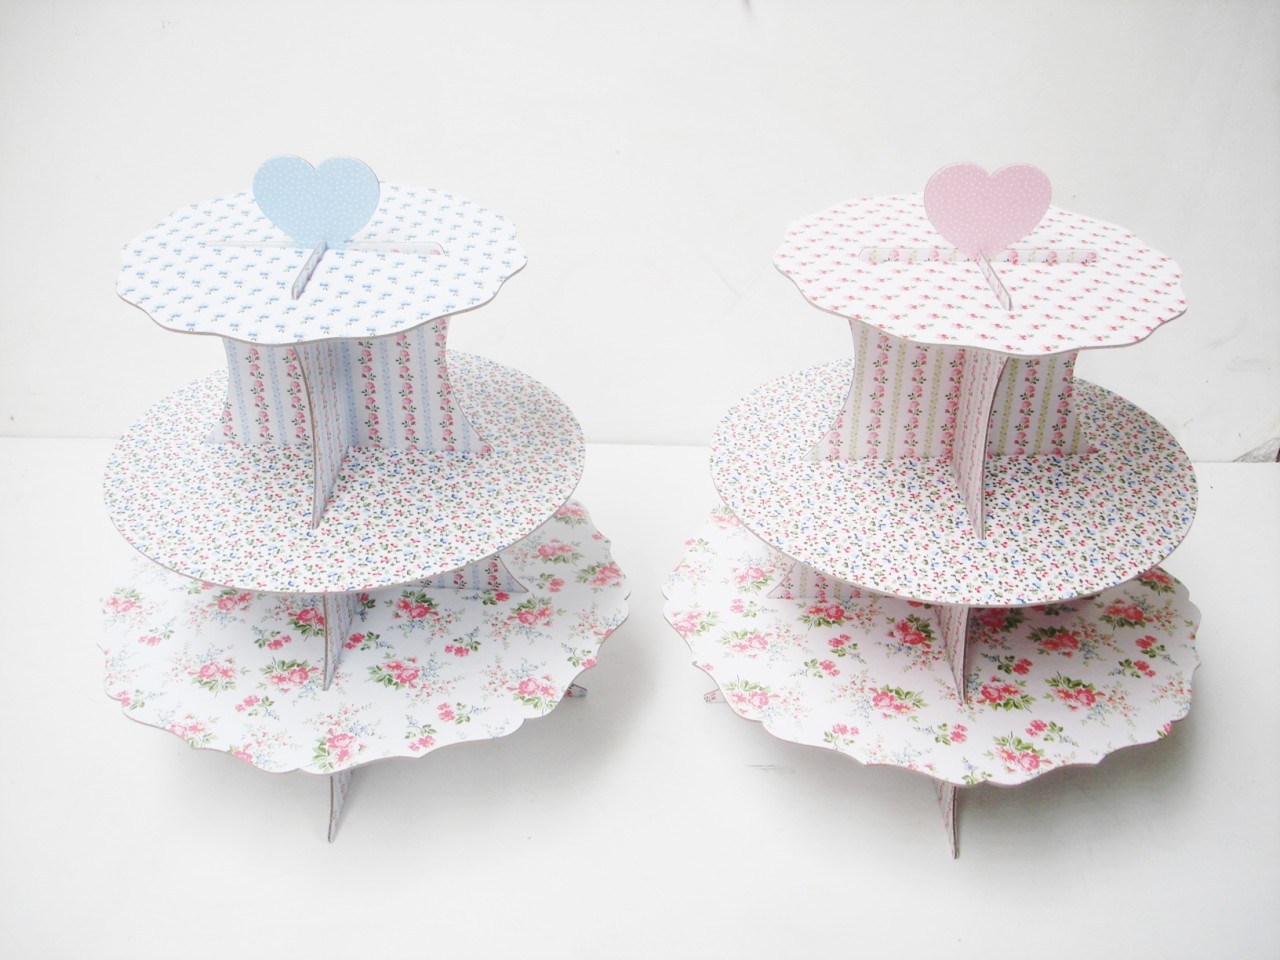 VINTAGE-FLOWER-BIRTHDAY-CHRISTMAS-WEDDING-PARTY-CARDBORAD-3-TIER-CUP-CAKE-STAND